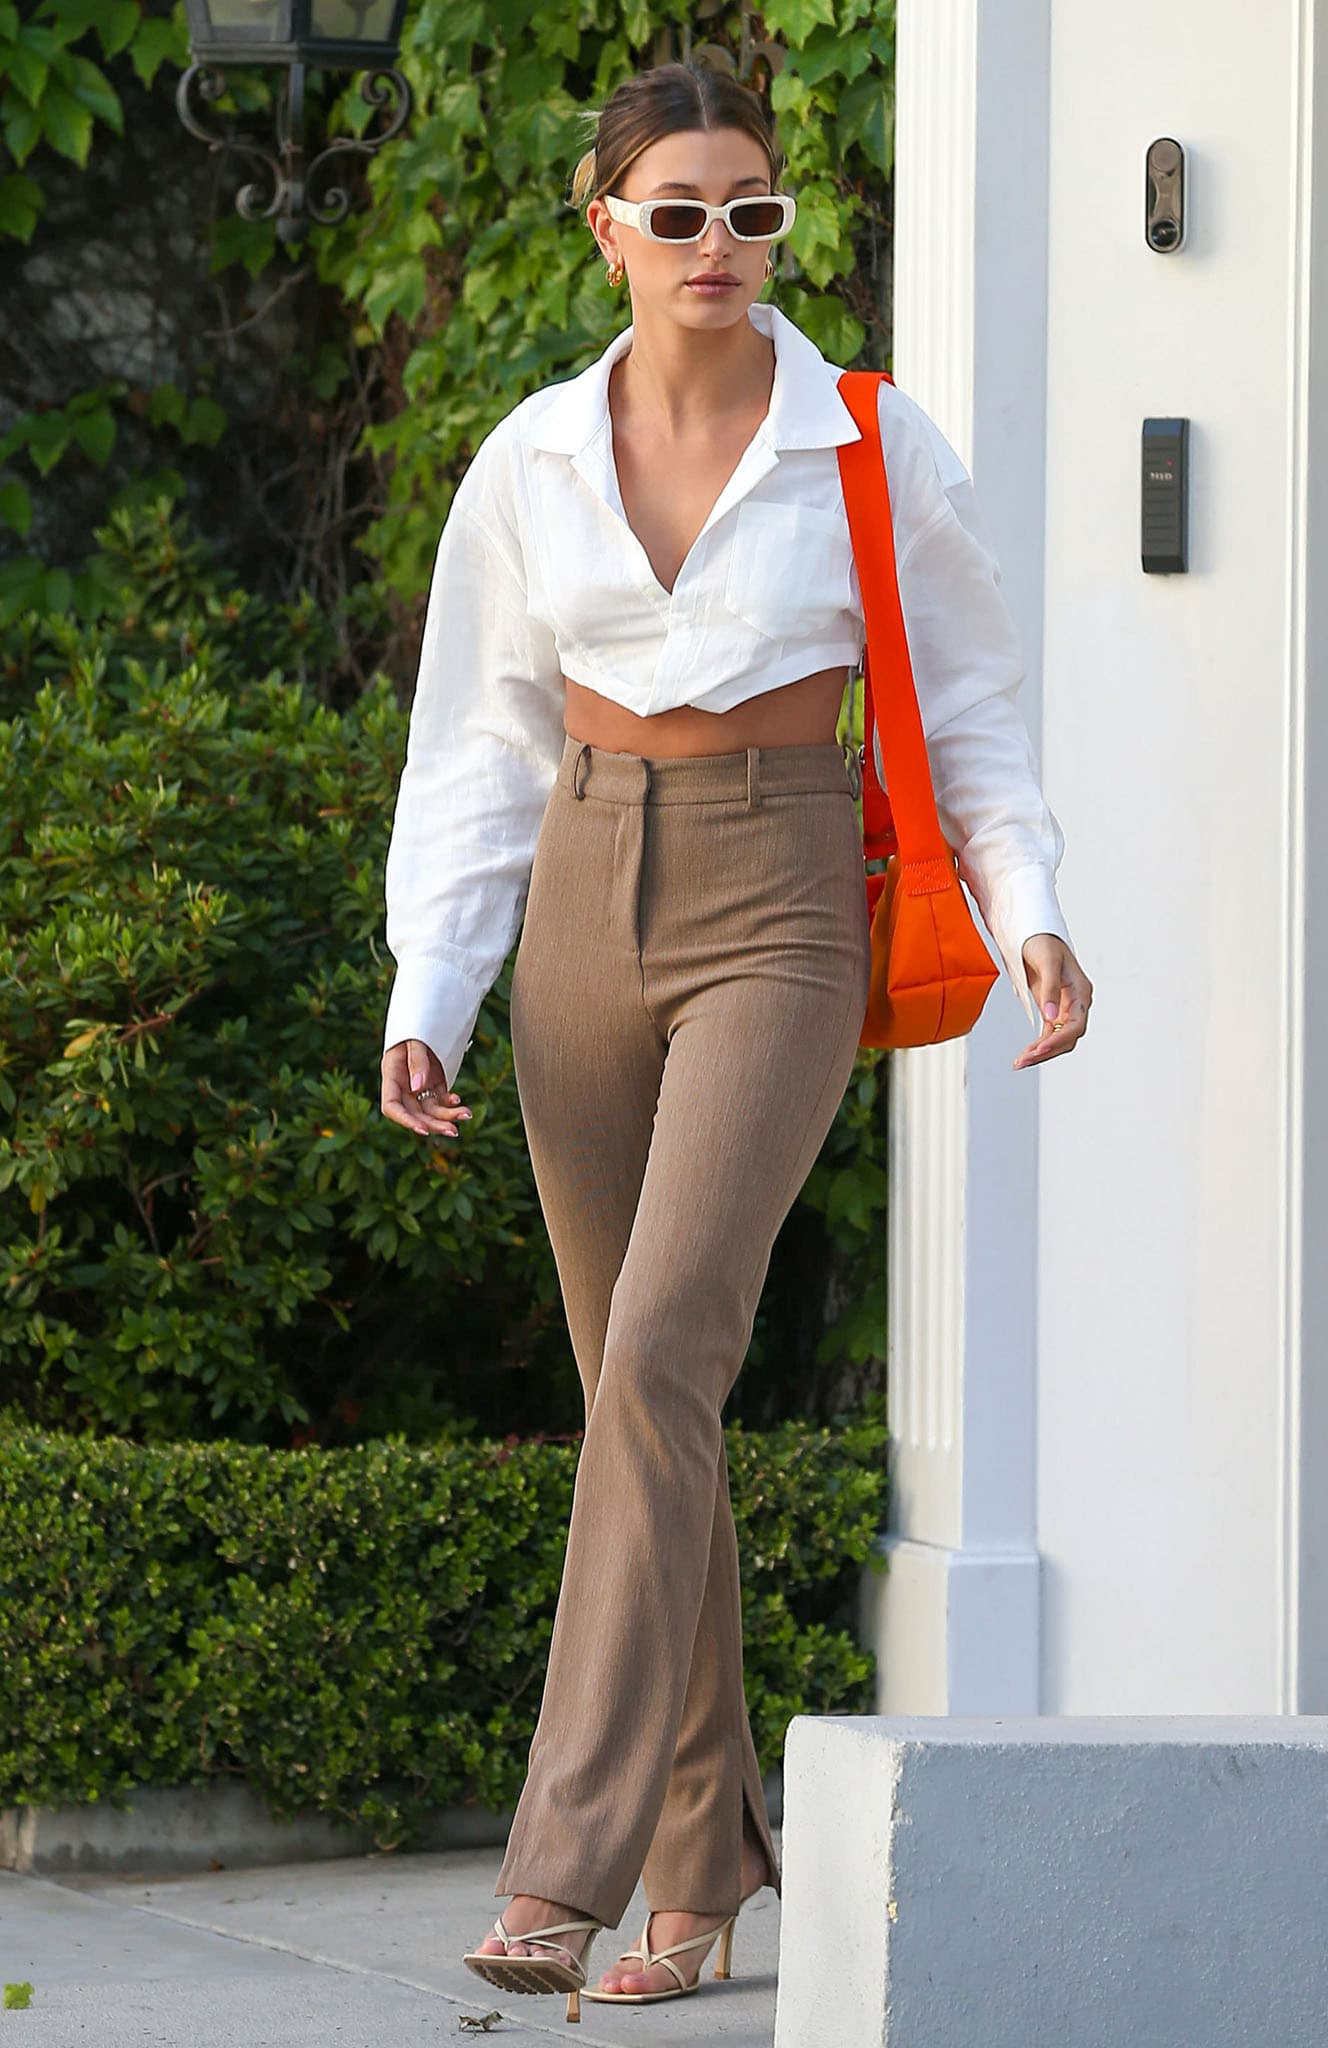 Hailey Bieber goes to a business meeting in Los Angeles on May 4, 2021